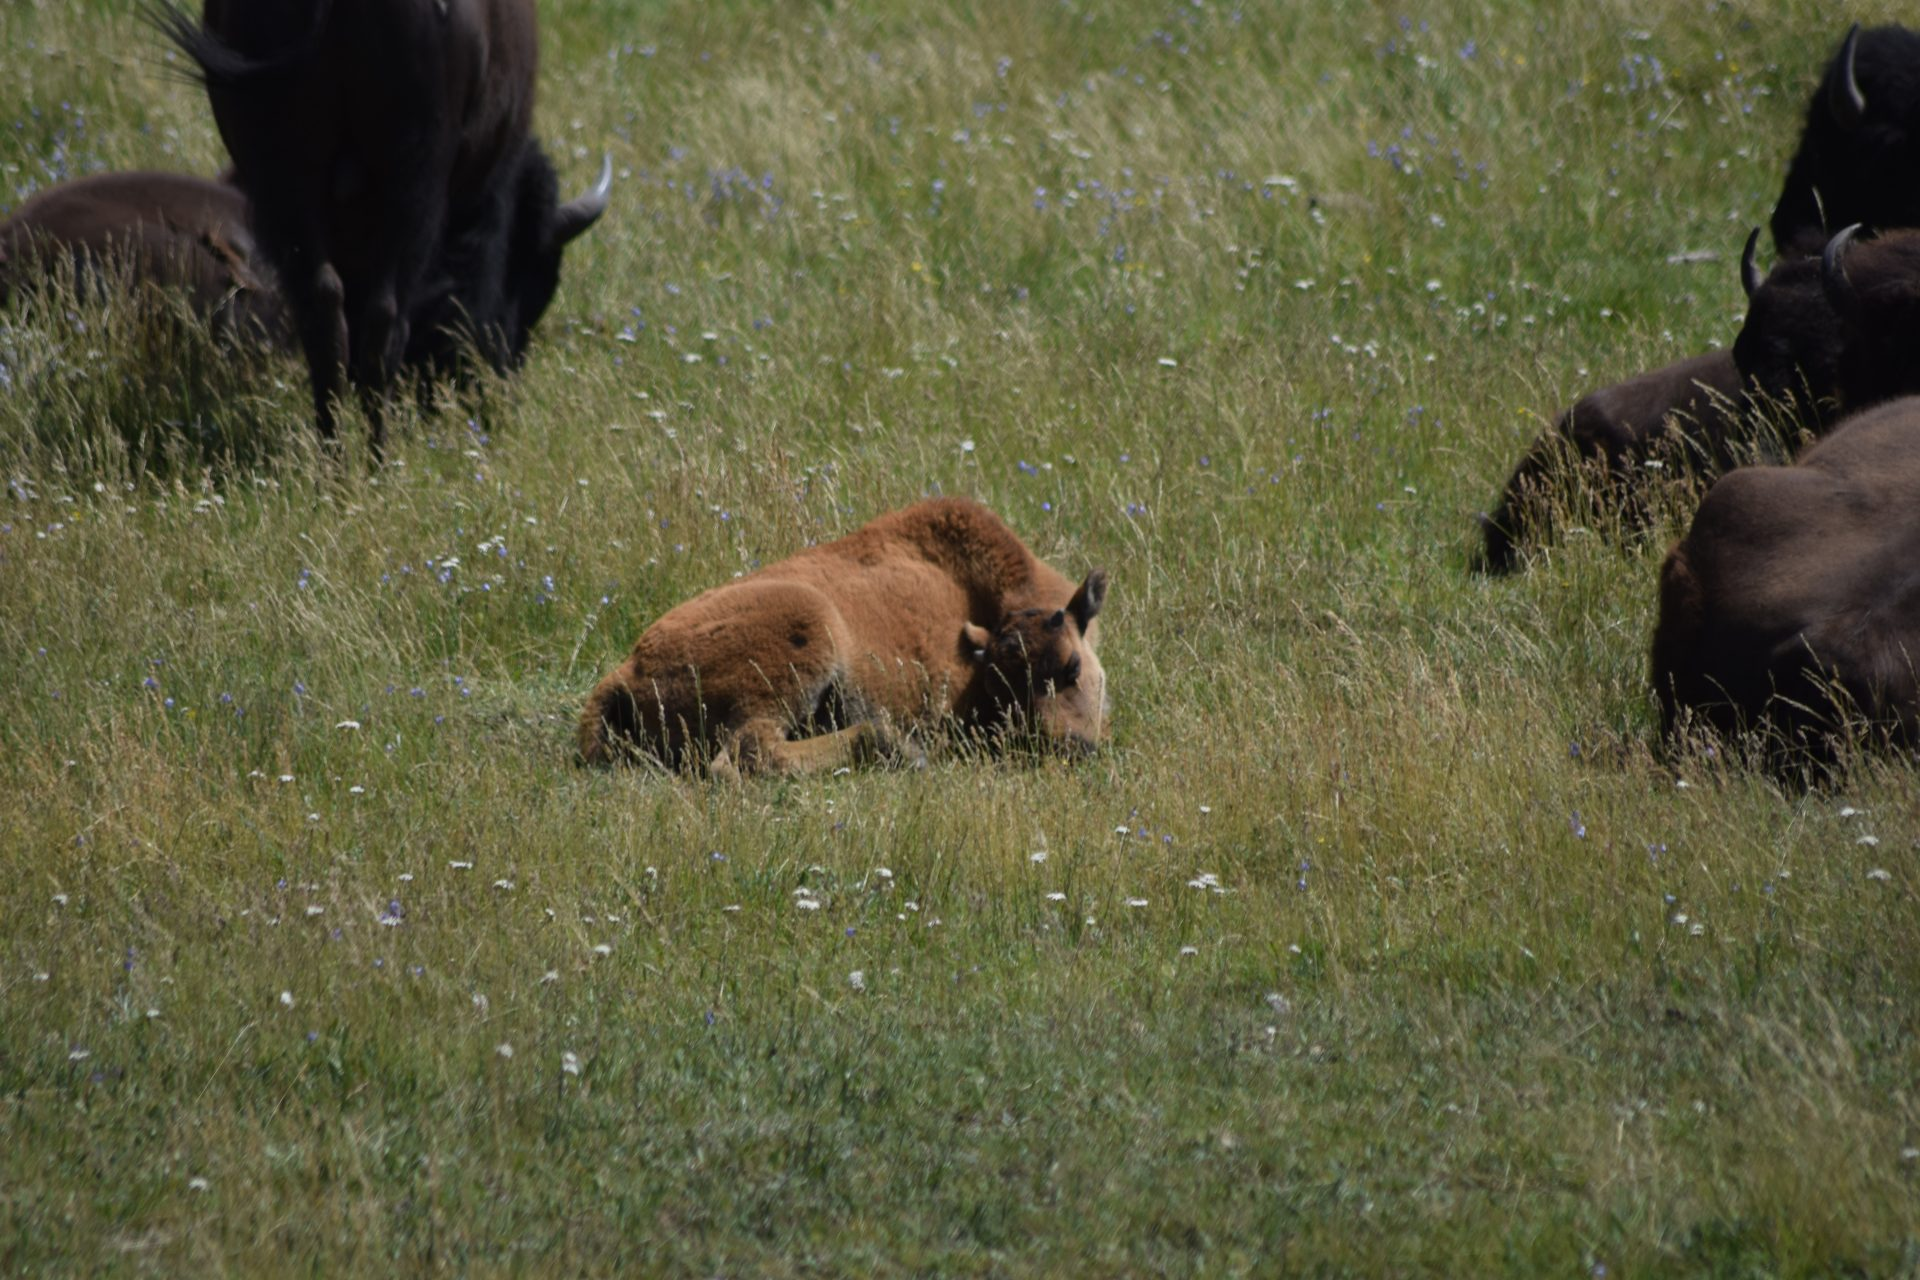 Bison calf laying in grassy field with wildflowers